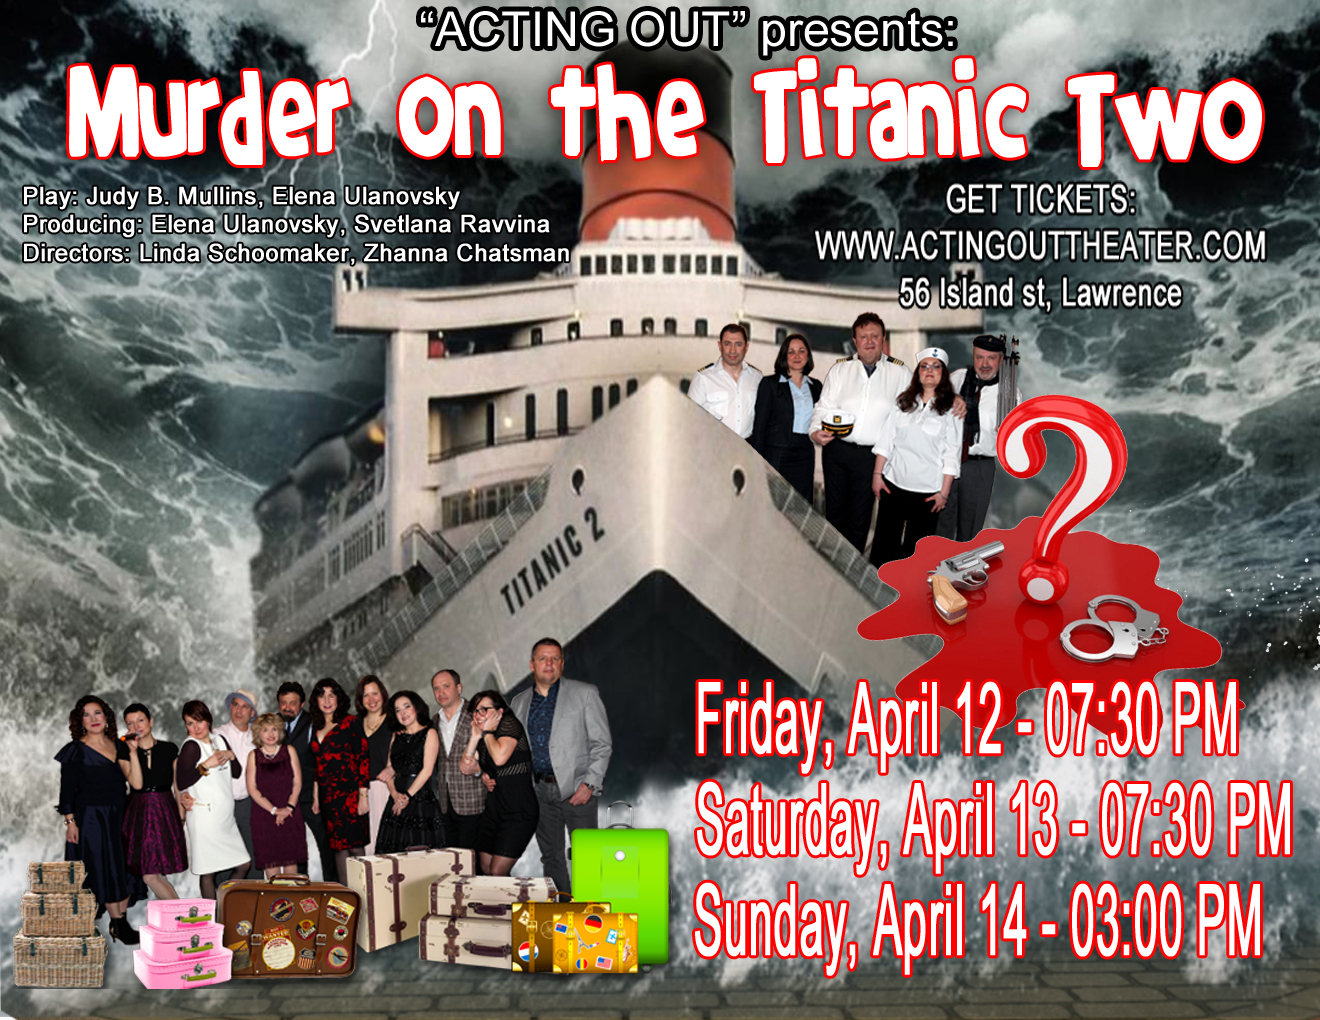 Murder on the Titanic Two